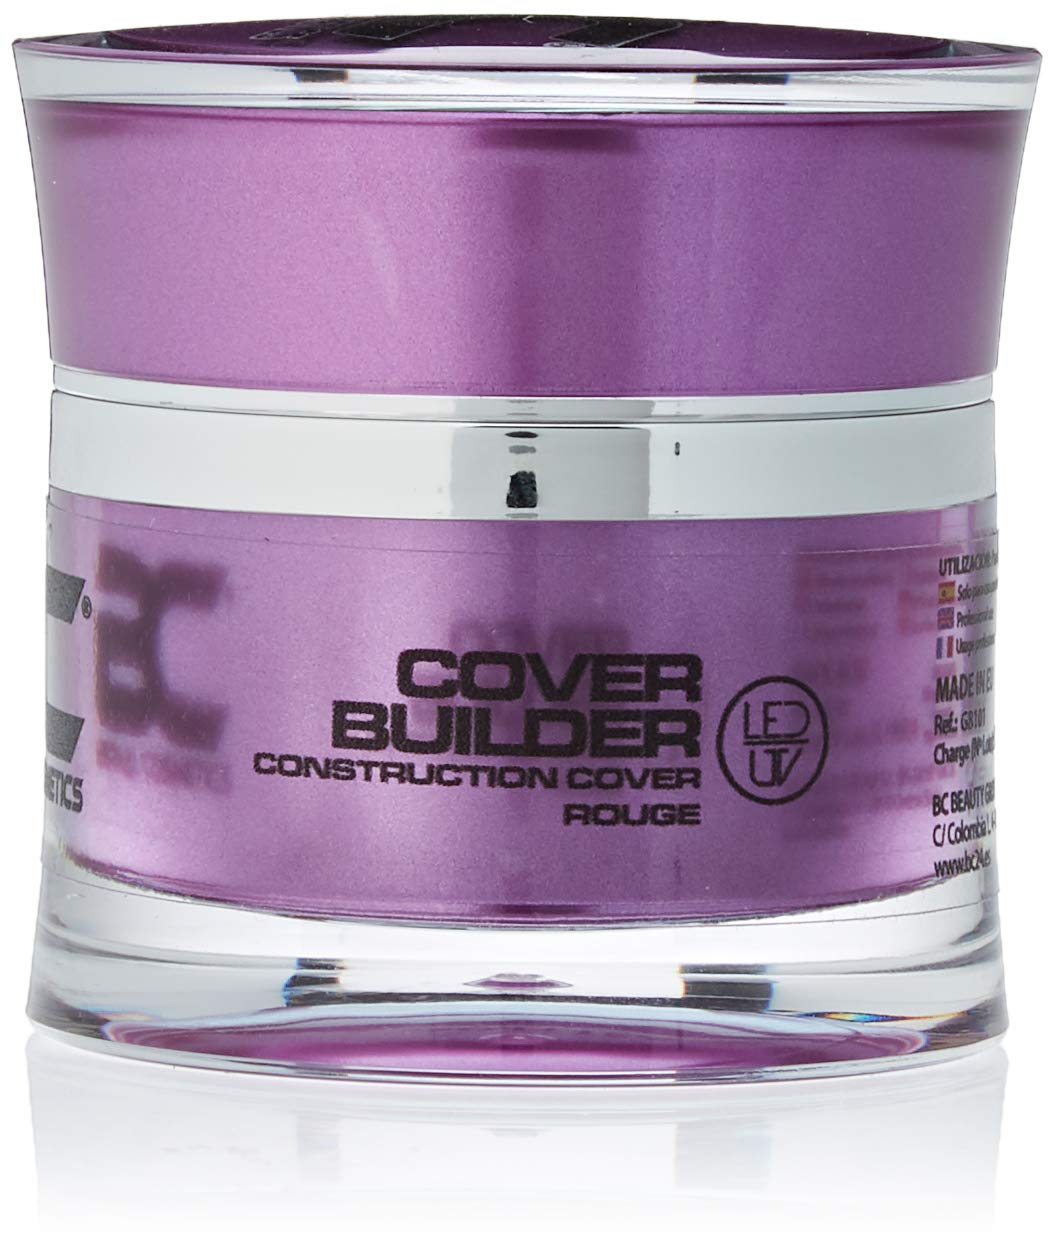 BC Bernal Cosmetics BC Cover Builder Gel Rouge - LED/UV - 15ml - (Constructor Cover Rouge) - 1 Unidad